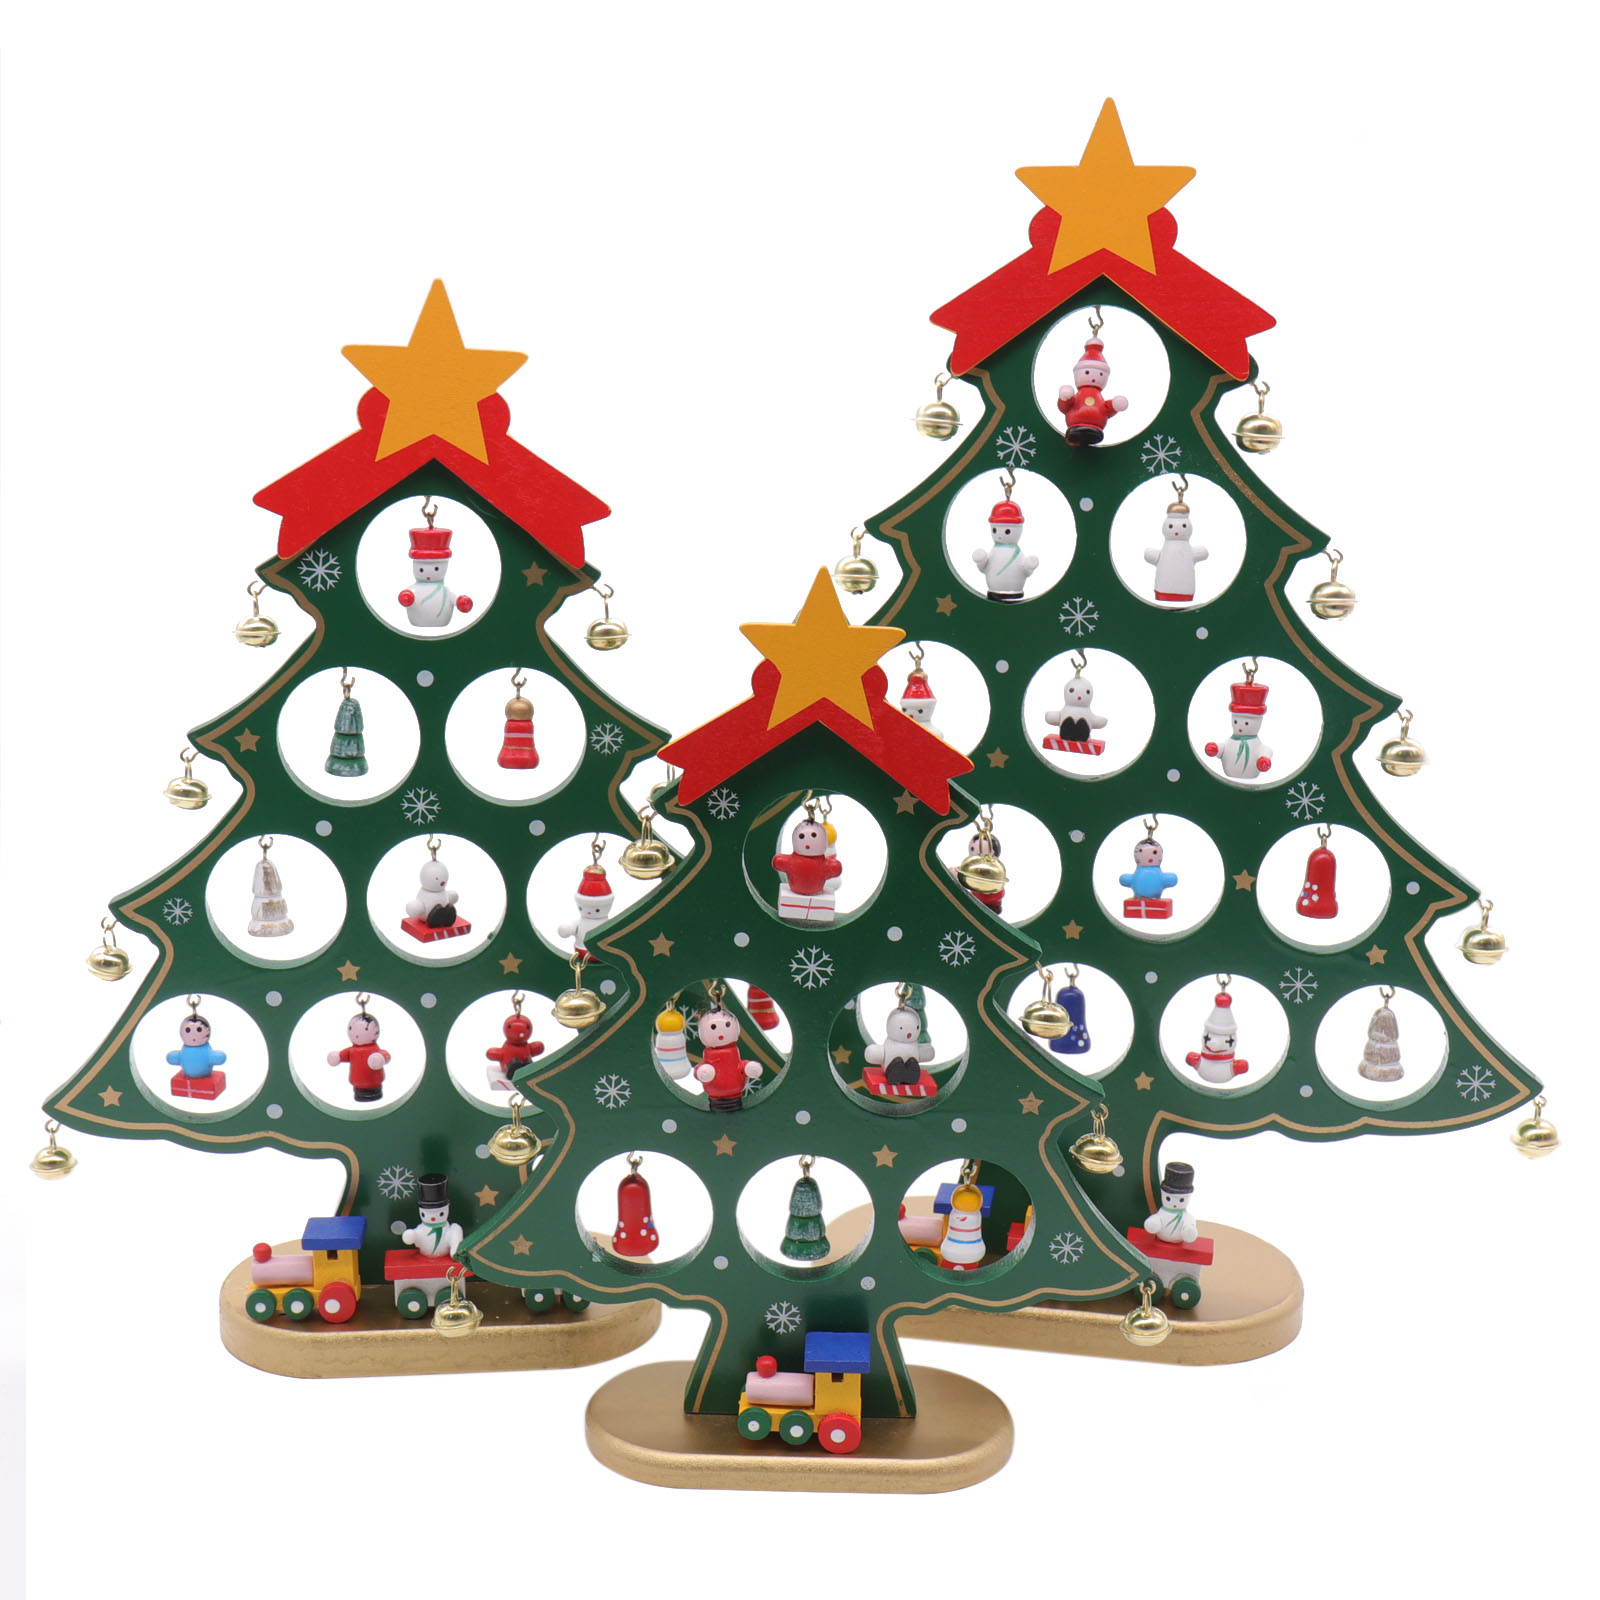 New Christmas tree wooden ornaments Gift DIY Christmas Ornaments Festival Party Xmas Tree Table Desk Decoration Toy Hanging TreeNew Christmas tree wooden ornaments Gift DIY Christmas Ornaments Festival Party Xmas Tree Table Desk Decoration Toy Hanging Tree